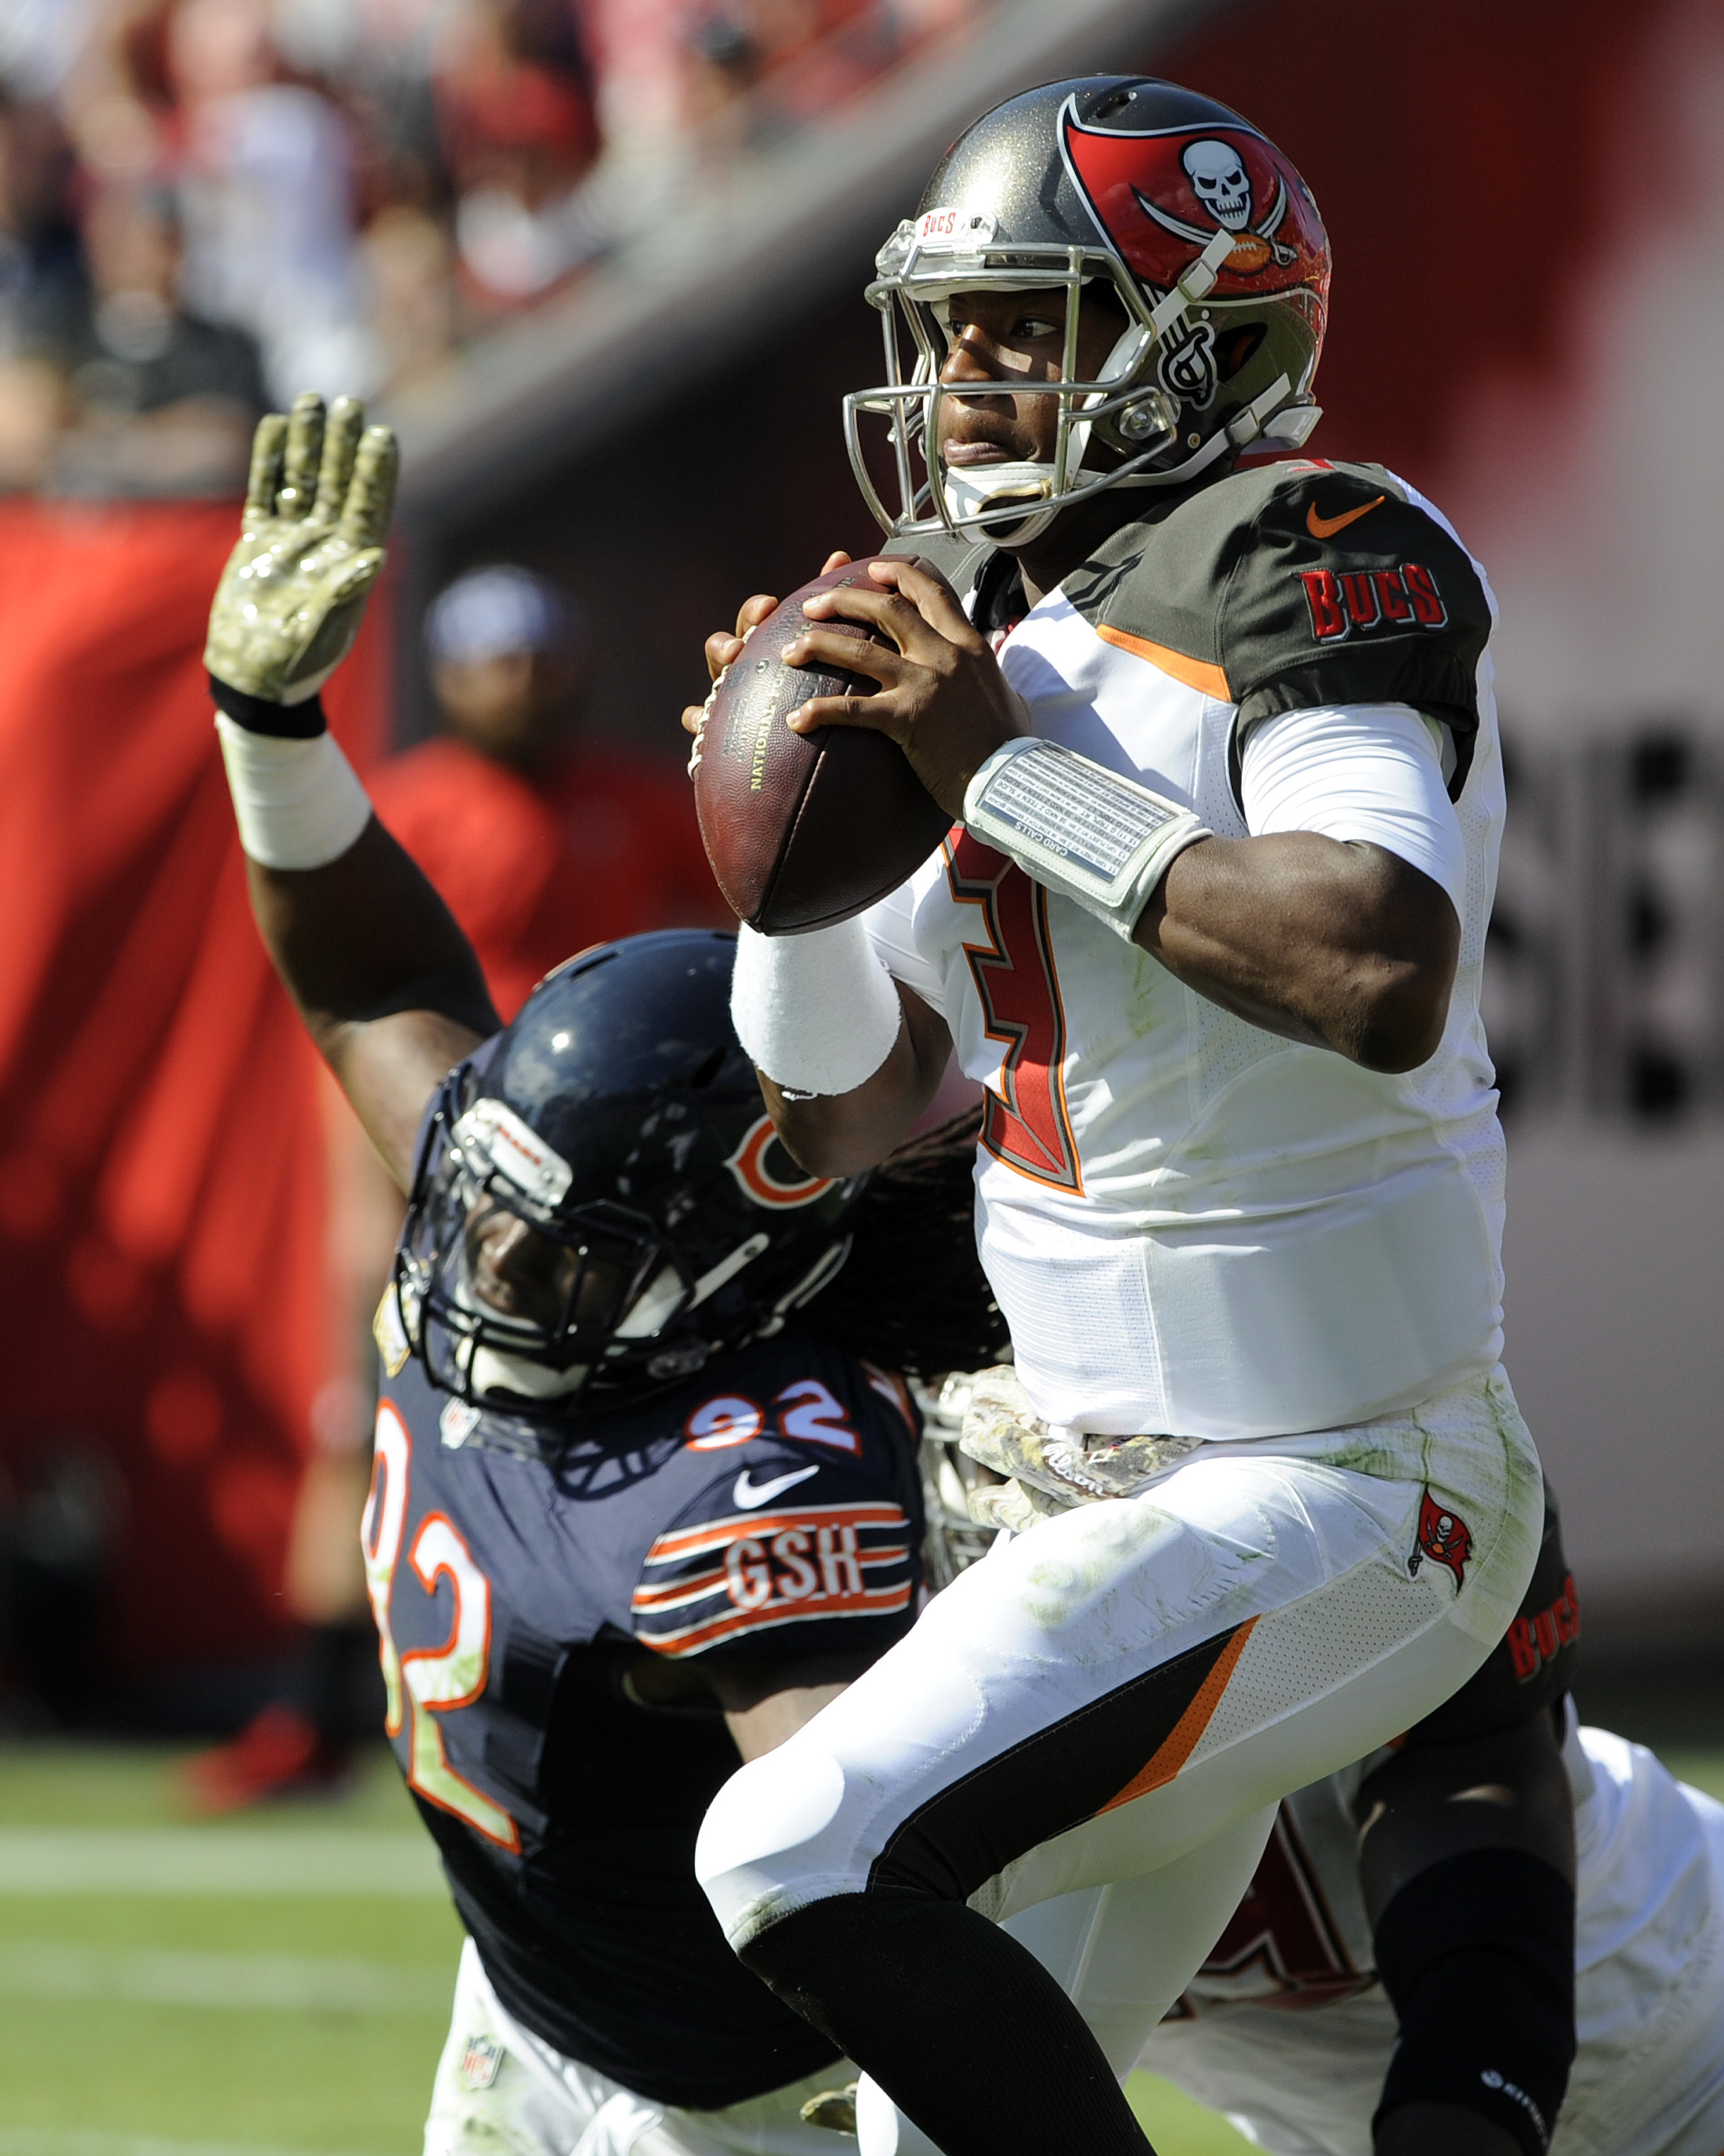 Tampa Bay Buccaneers quarterback Jameis Winston (3) scrambles away from Chicago Bears outside linebacker Pernell McPhee (92) during the second quarter of an NFL football game Sunday, Nov. 13, 2016, in Tampa, Fla. (AP Photo/Steve Nesius)